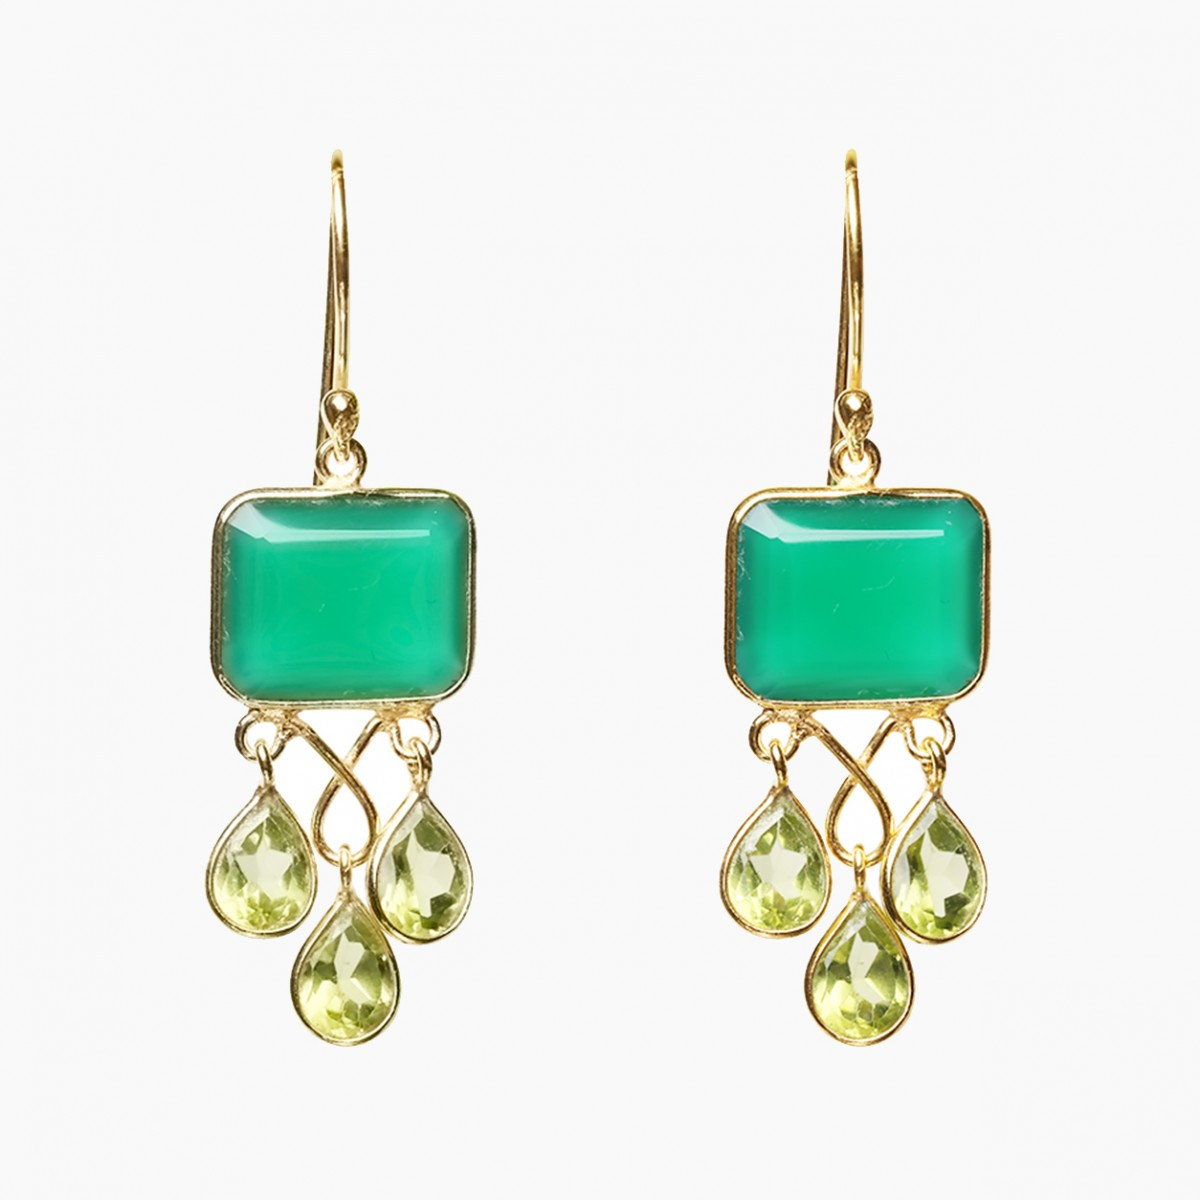 Gemstone Earrings - Green Onyx and Peridot